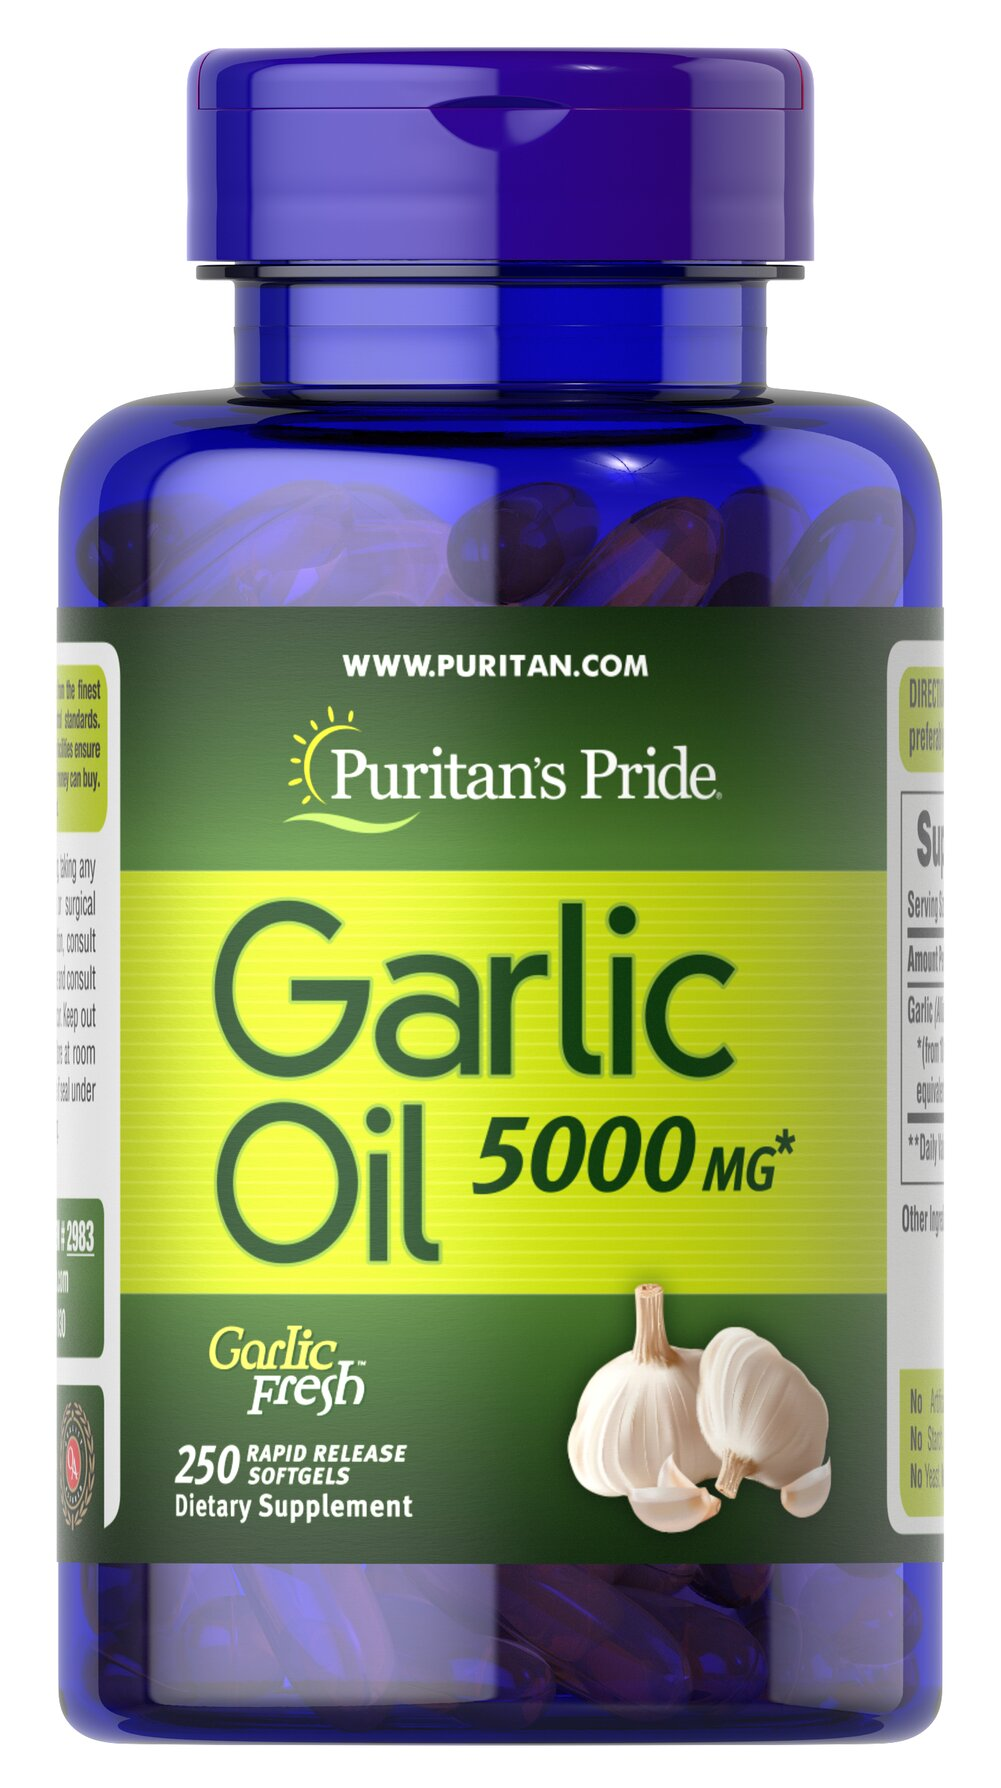 Garlic Oil 5000 mg <p>Cholesterol Support**</p><p>Supports Cardiovascular Health**</p><p>Whether warding off evil spirits or flavoring sauces, Garlic has been known for its beneficial qualities. Natural ingredients in Garlic include alliin, allinase and allicin. Garlic promotes cardiovascular health and helps to maintain cholesterol levels that are already within the normal range.**</p> 250 Softgels 5000 mg $23.99